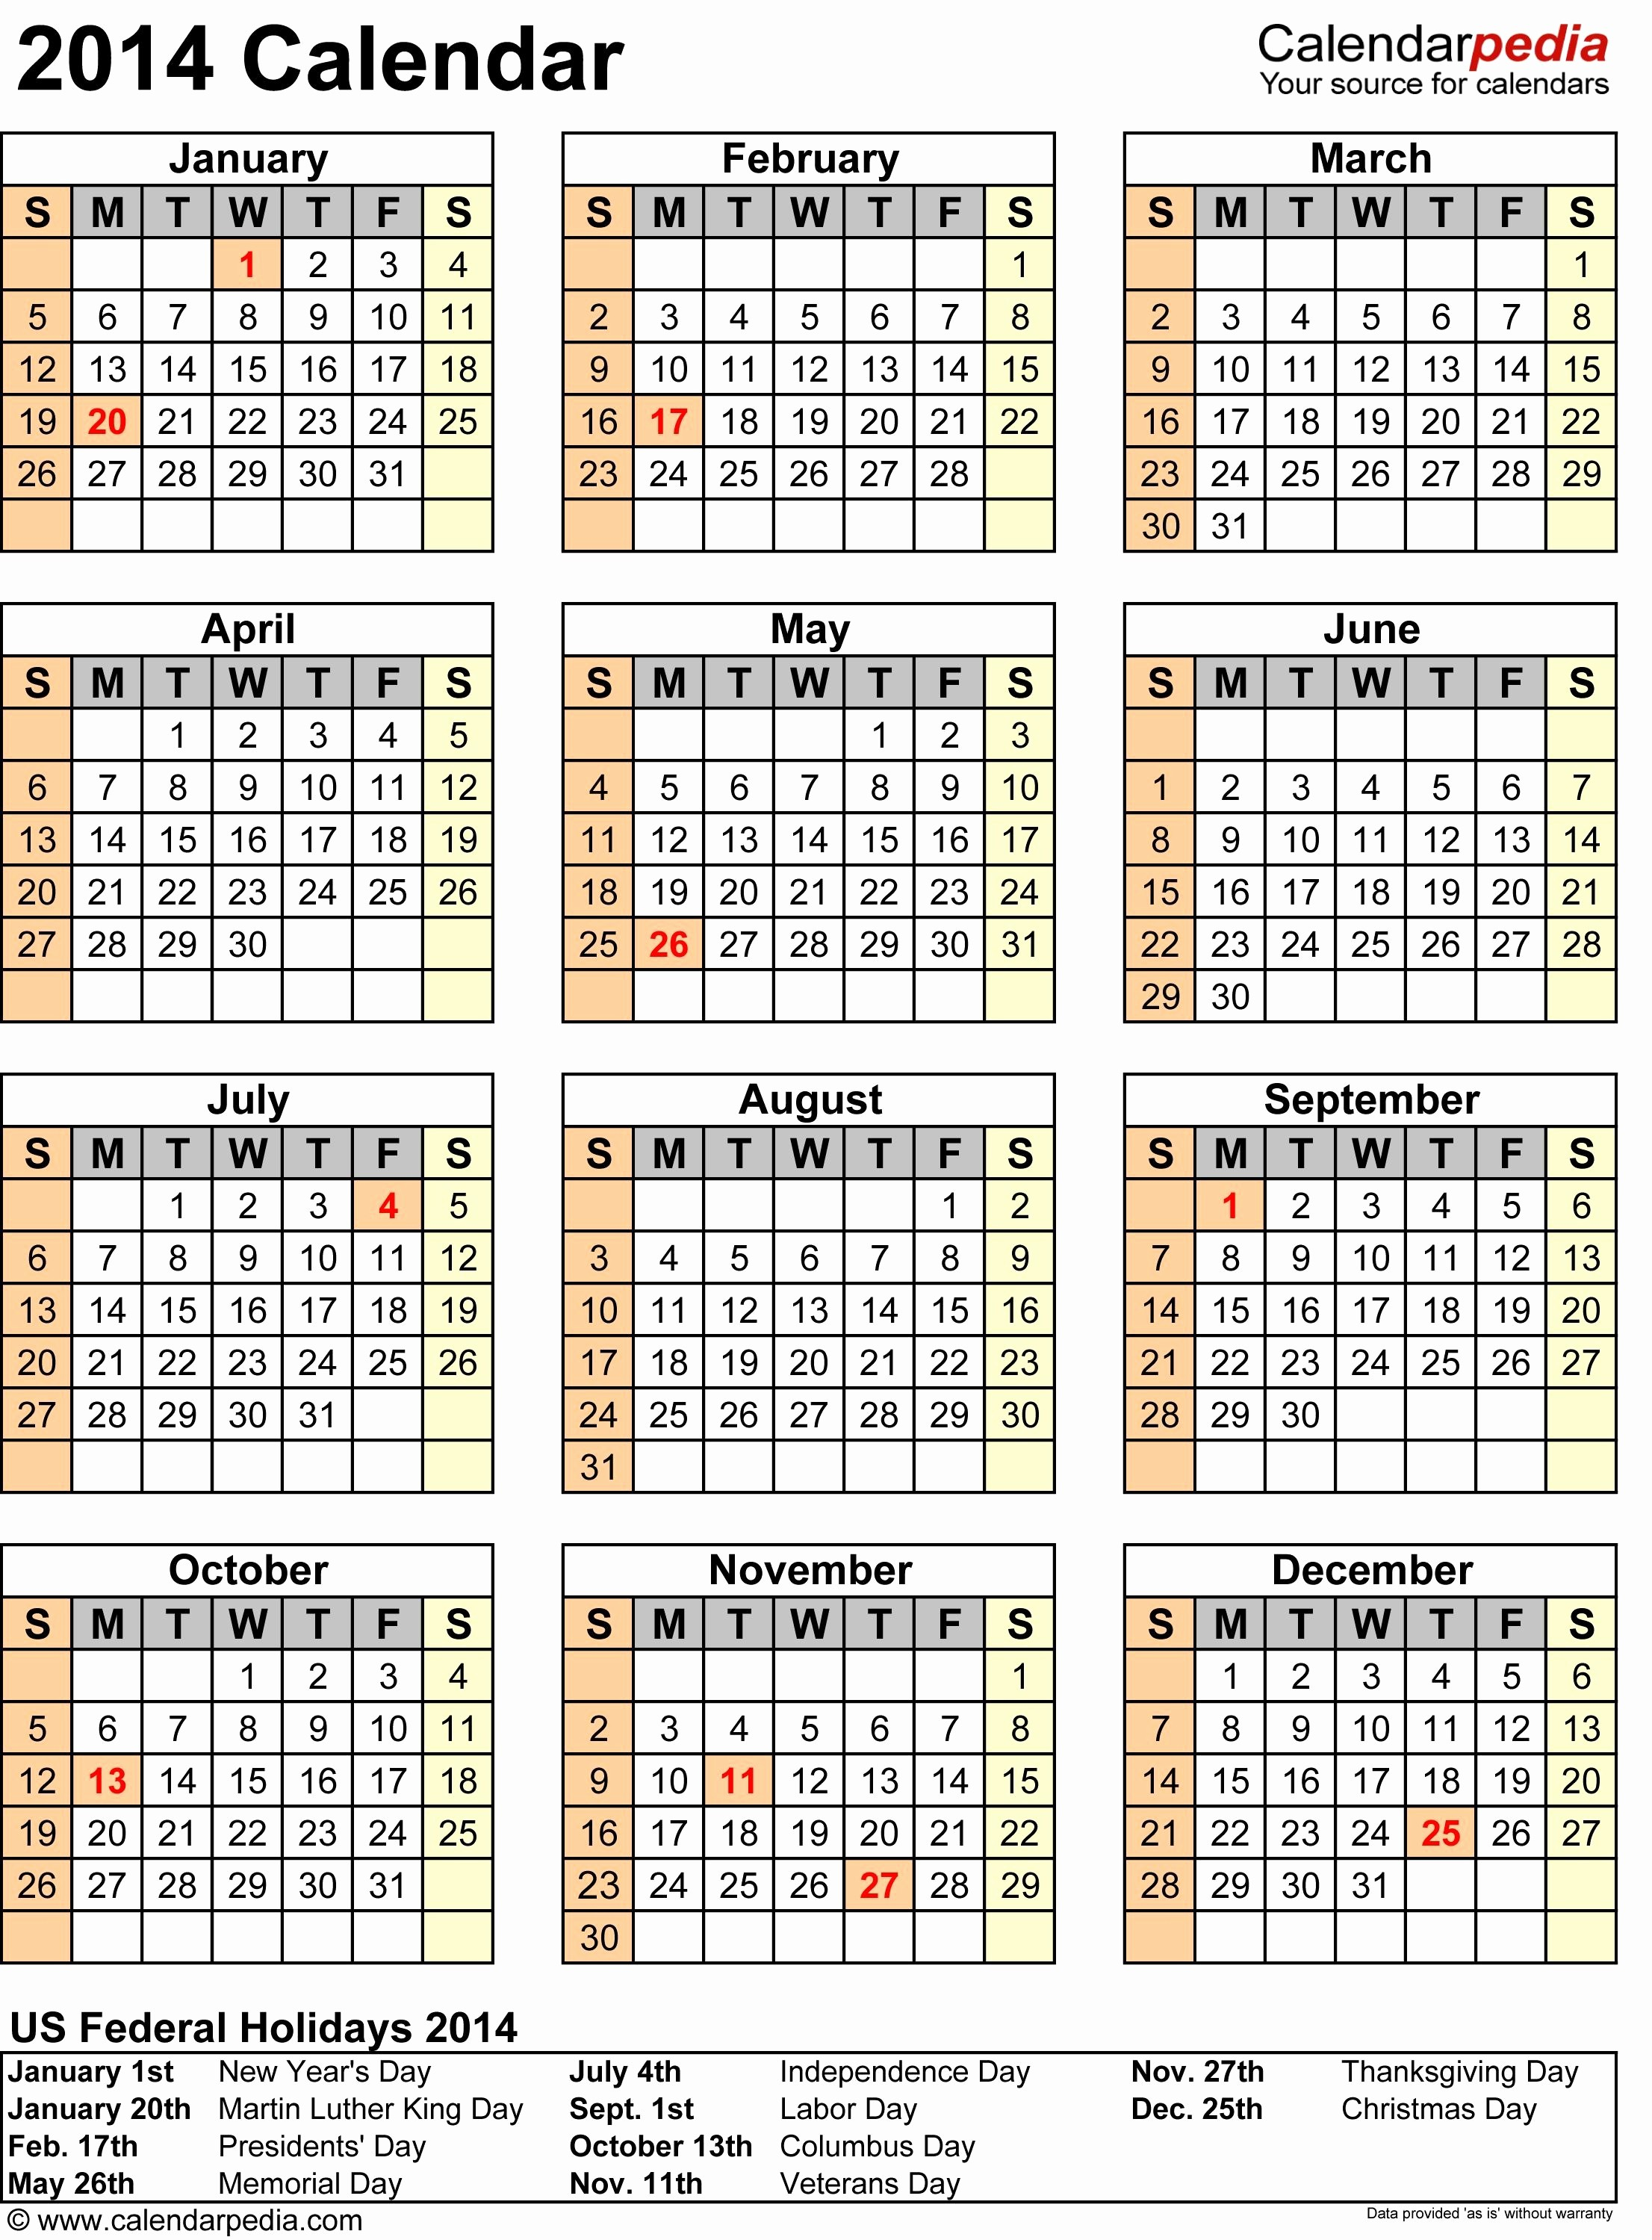 Excel Calendar 2017 with Holidays Fresh 2014 Calendar Template with Holidays